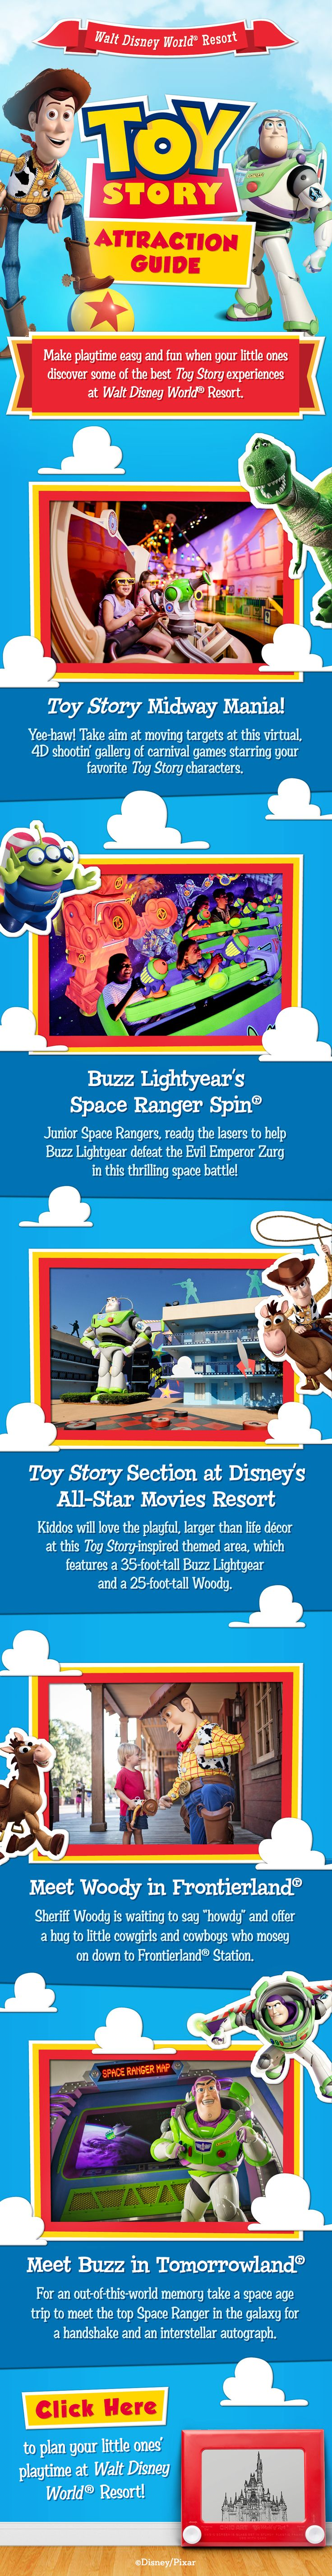 Learn about Toy Story experiences for your little ones at during your Walt Disney World vacation!